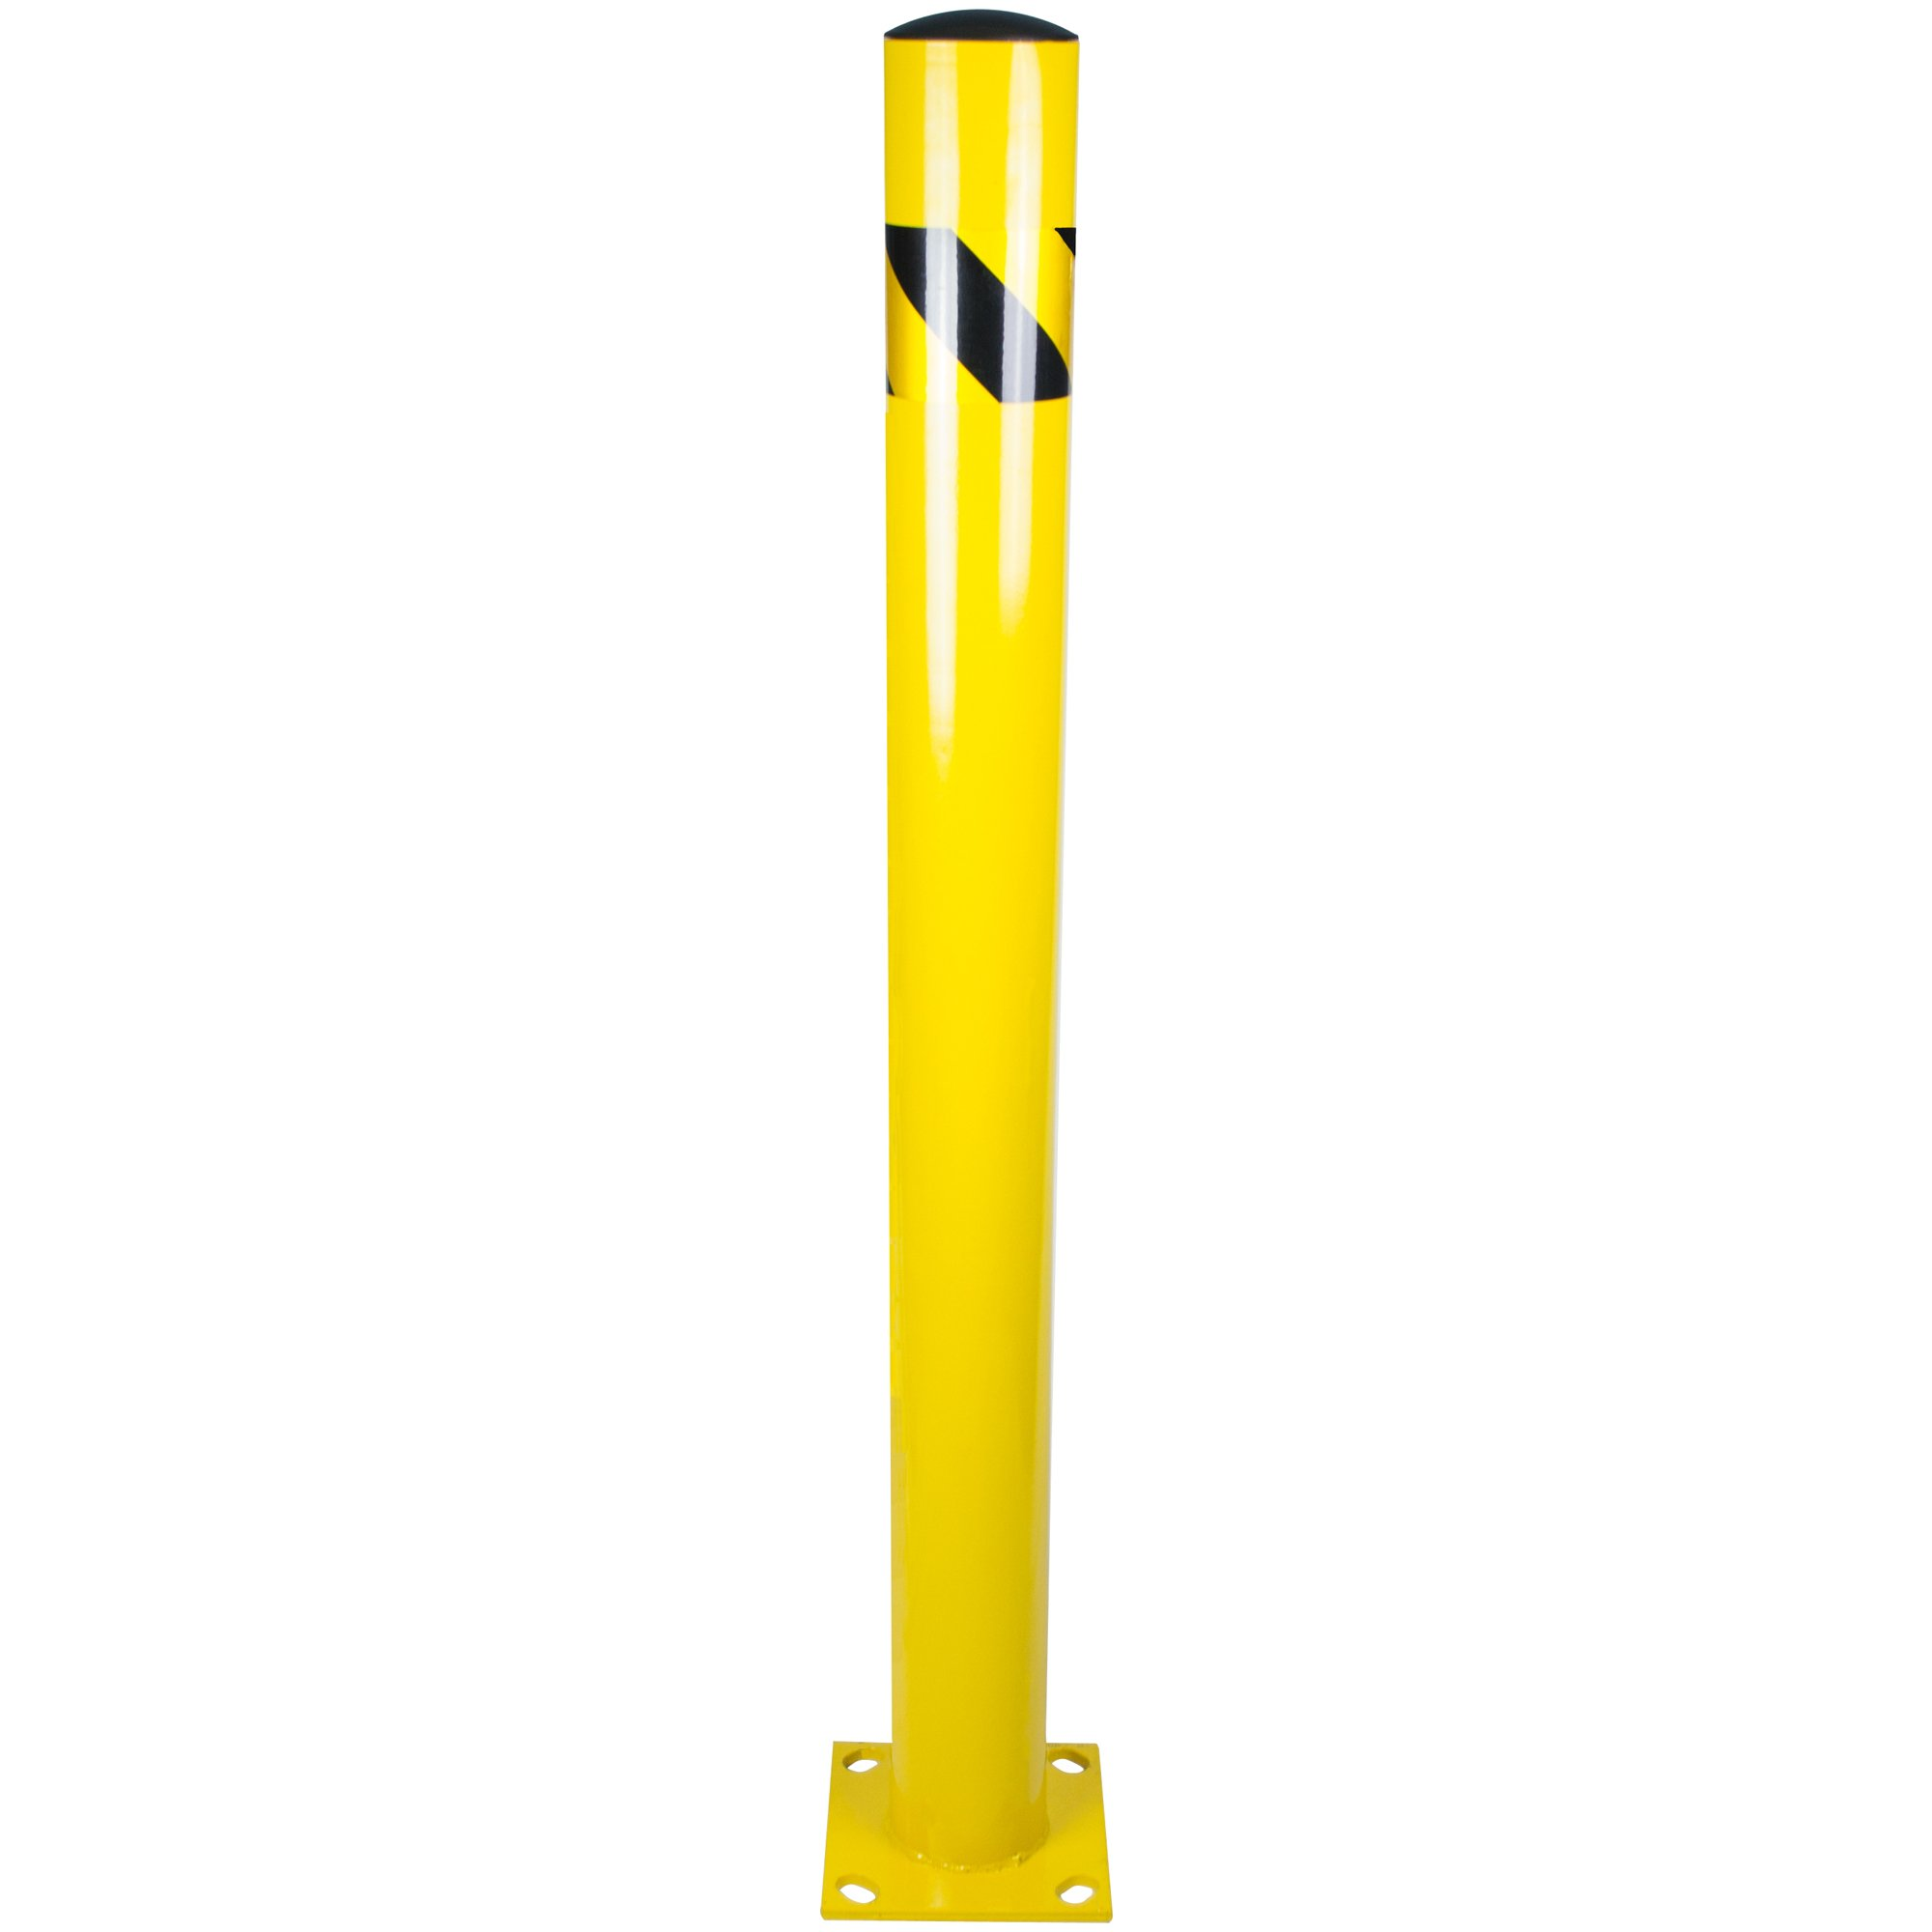 Bollard Post - Steel Safety Barrier Protection- Yellow Powder Coat 4.5'' Diameter 48'' Tall BW4548